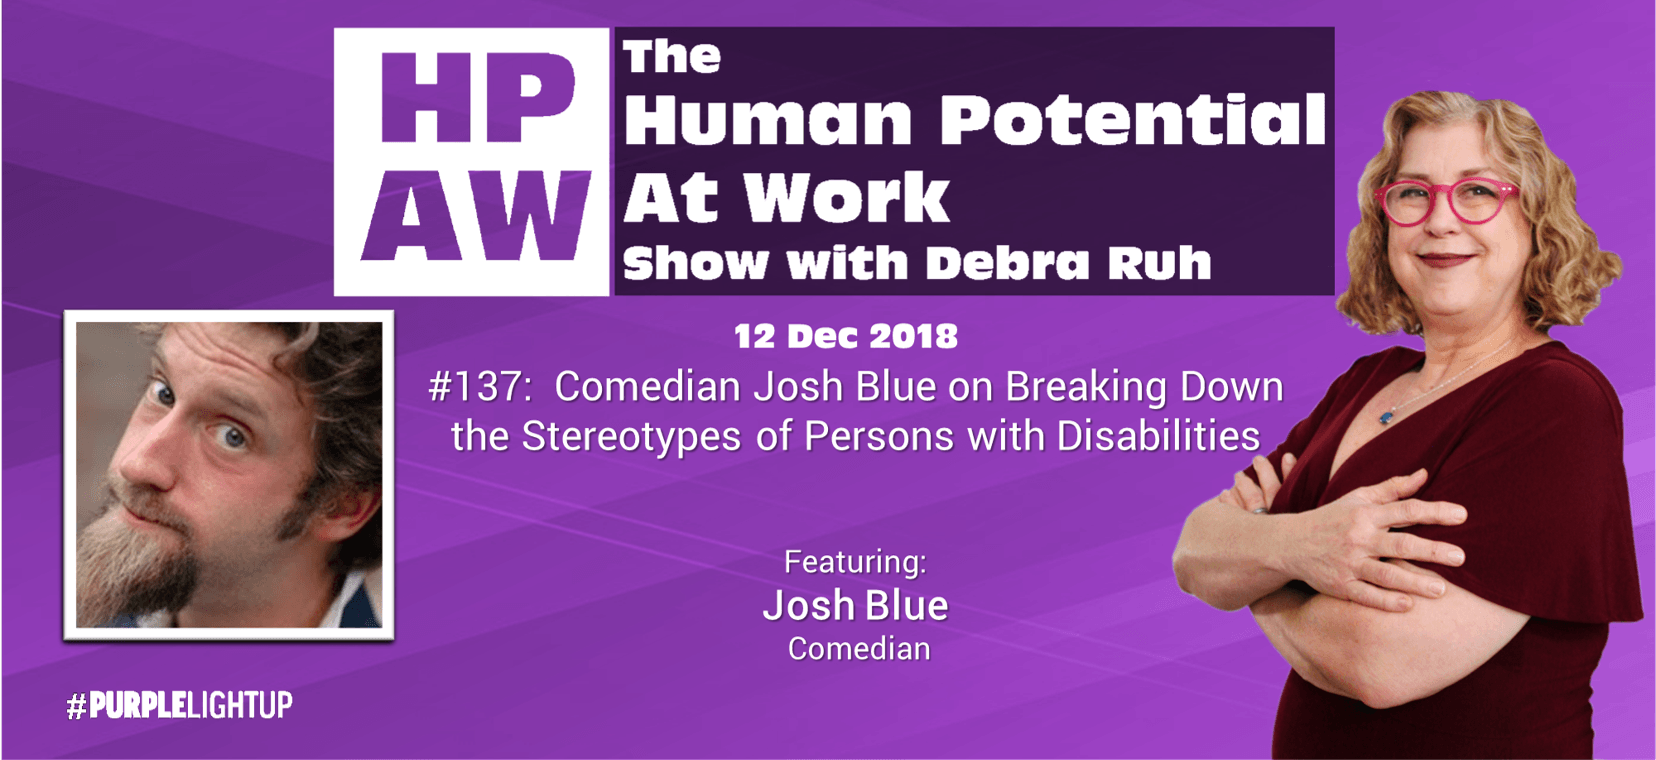 Episode Flyer for #137 Comedian Josh Blue on Breaking Down the Stereotypes of Persons with Disabilities